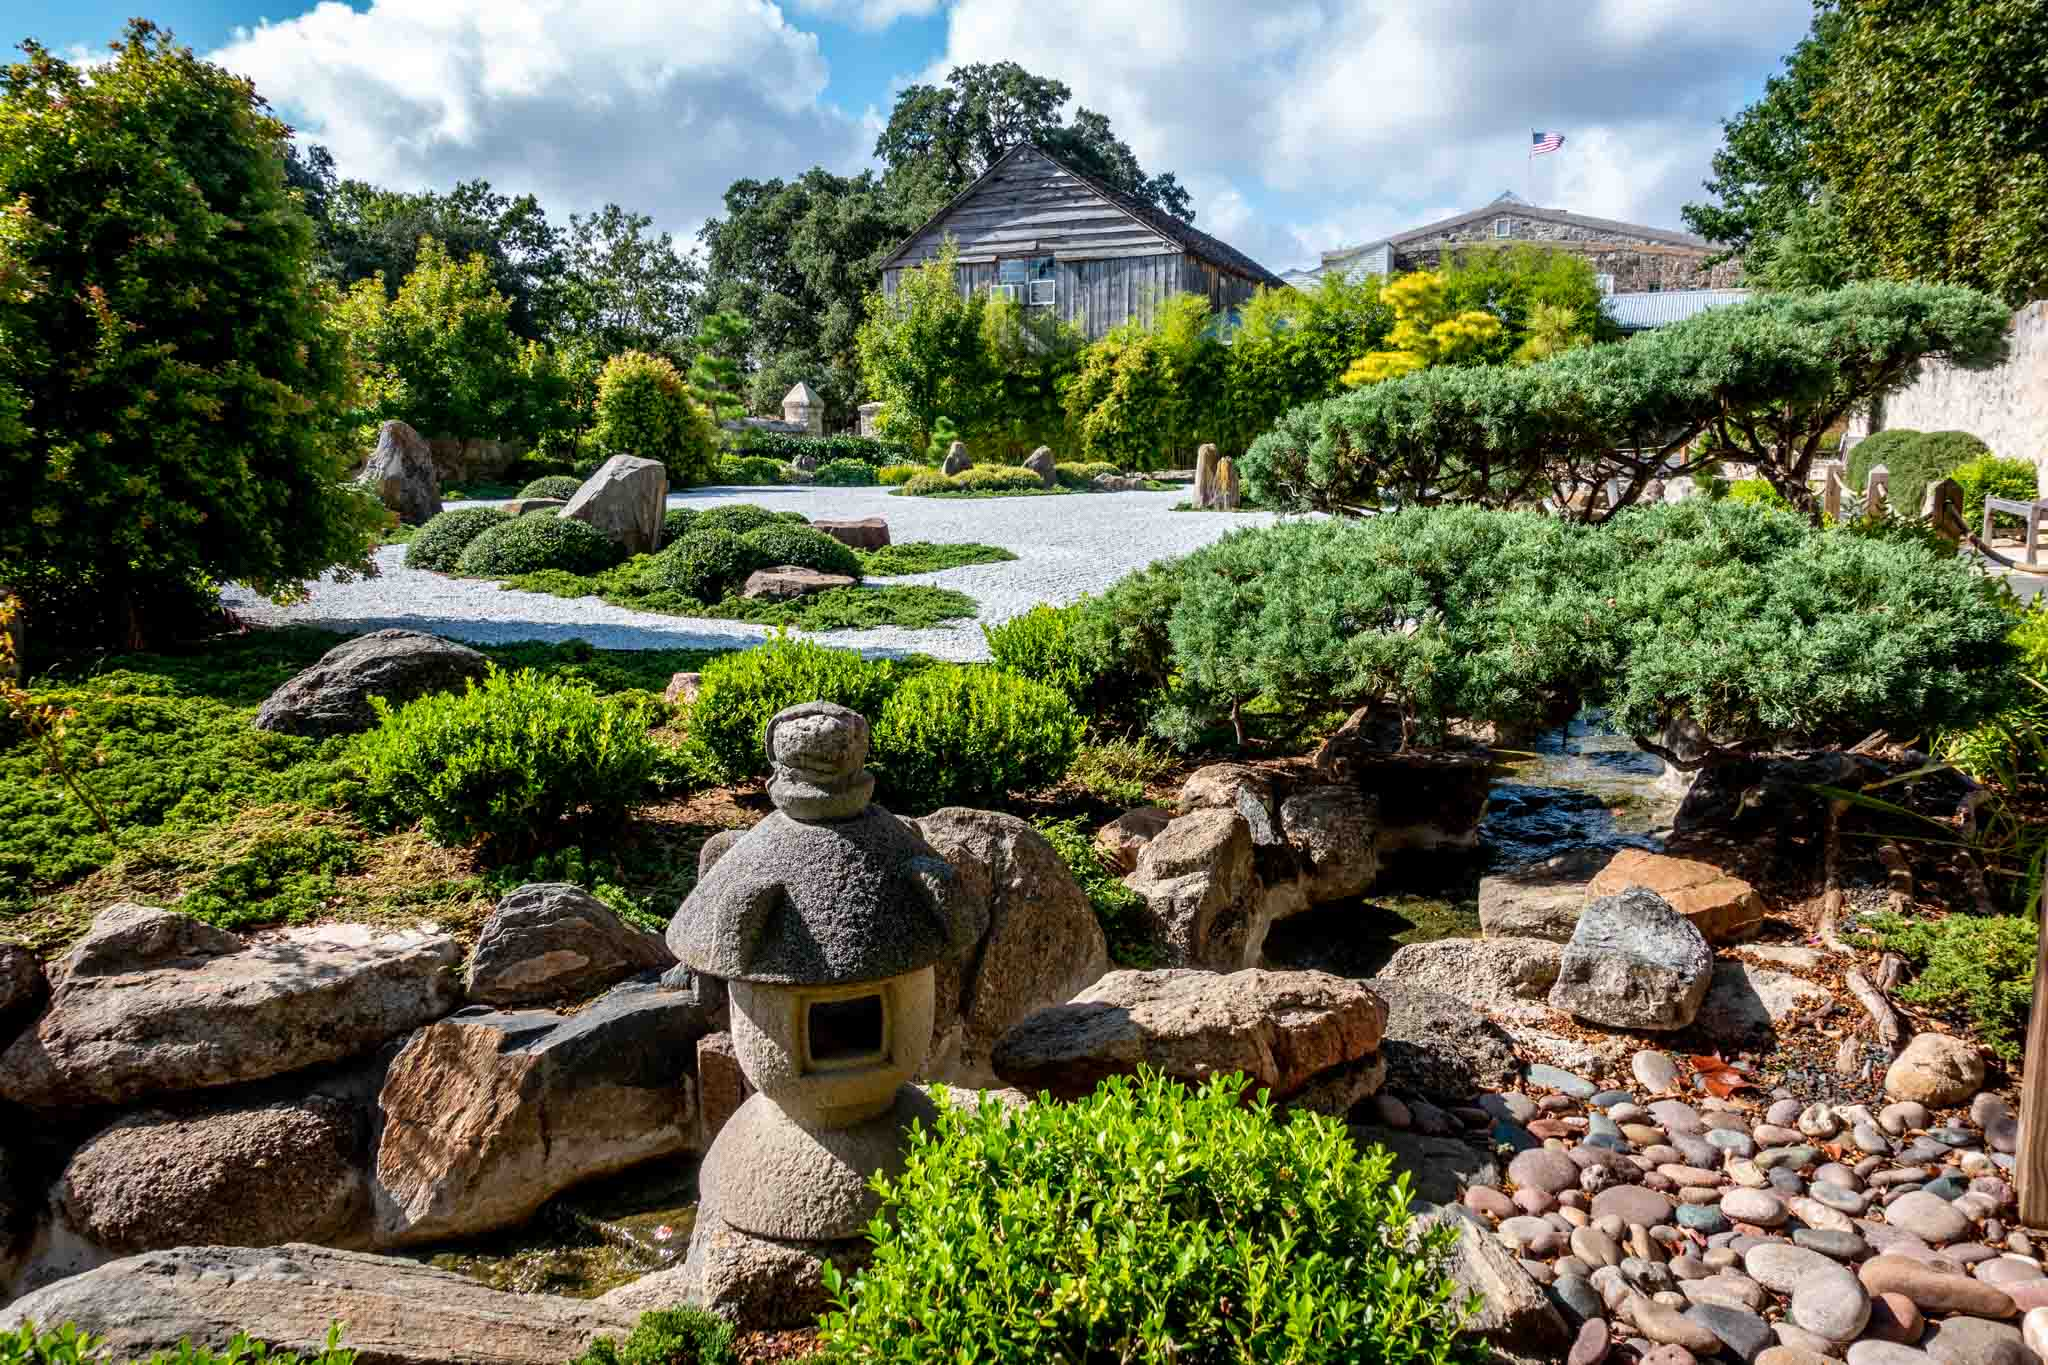 Plants and decorations in the Japanese Garden of Peace in Fredericksburg, Texas